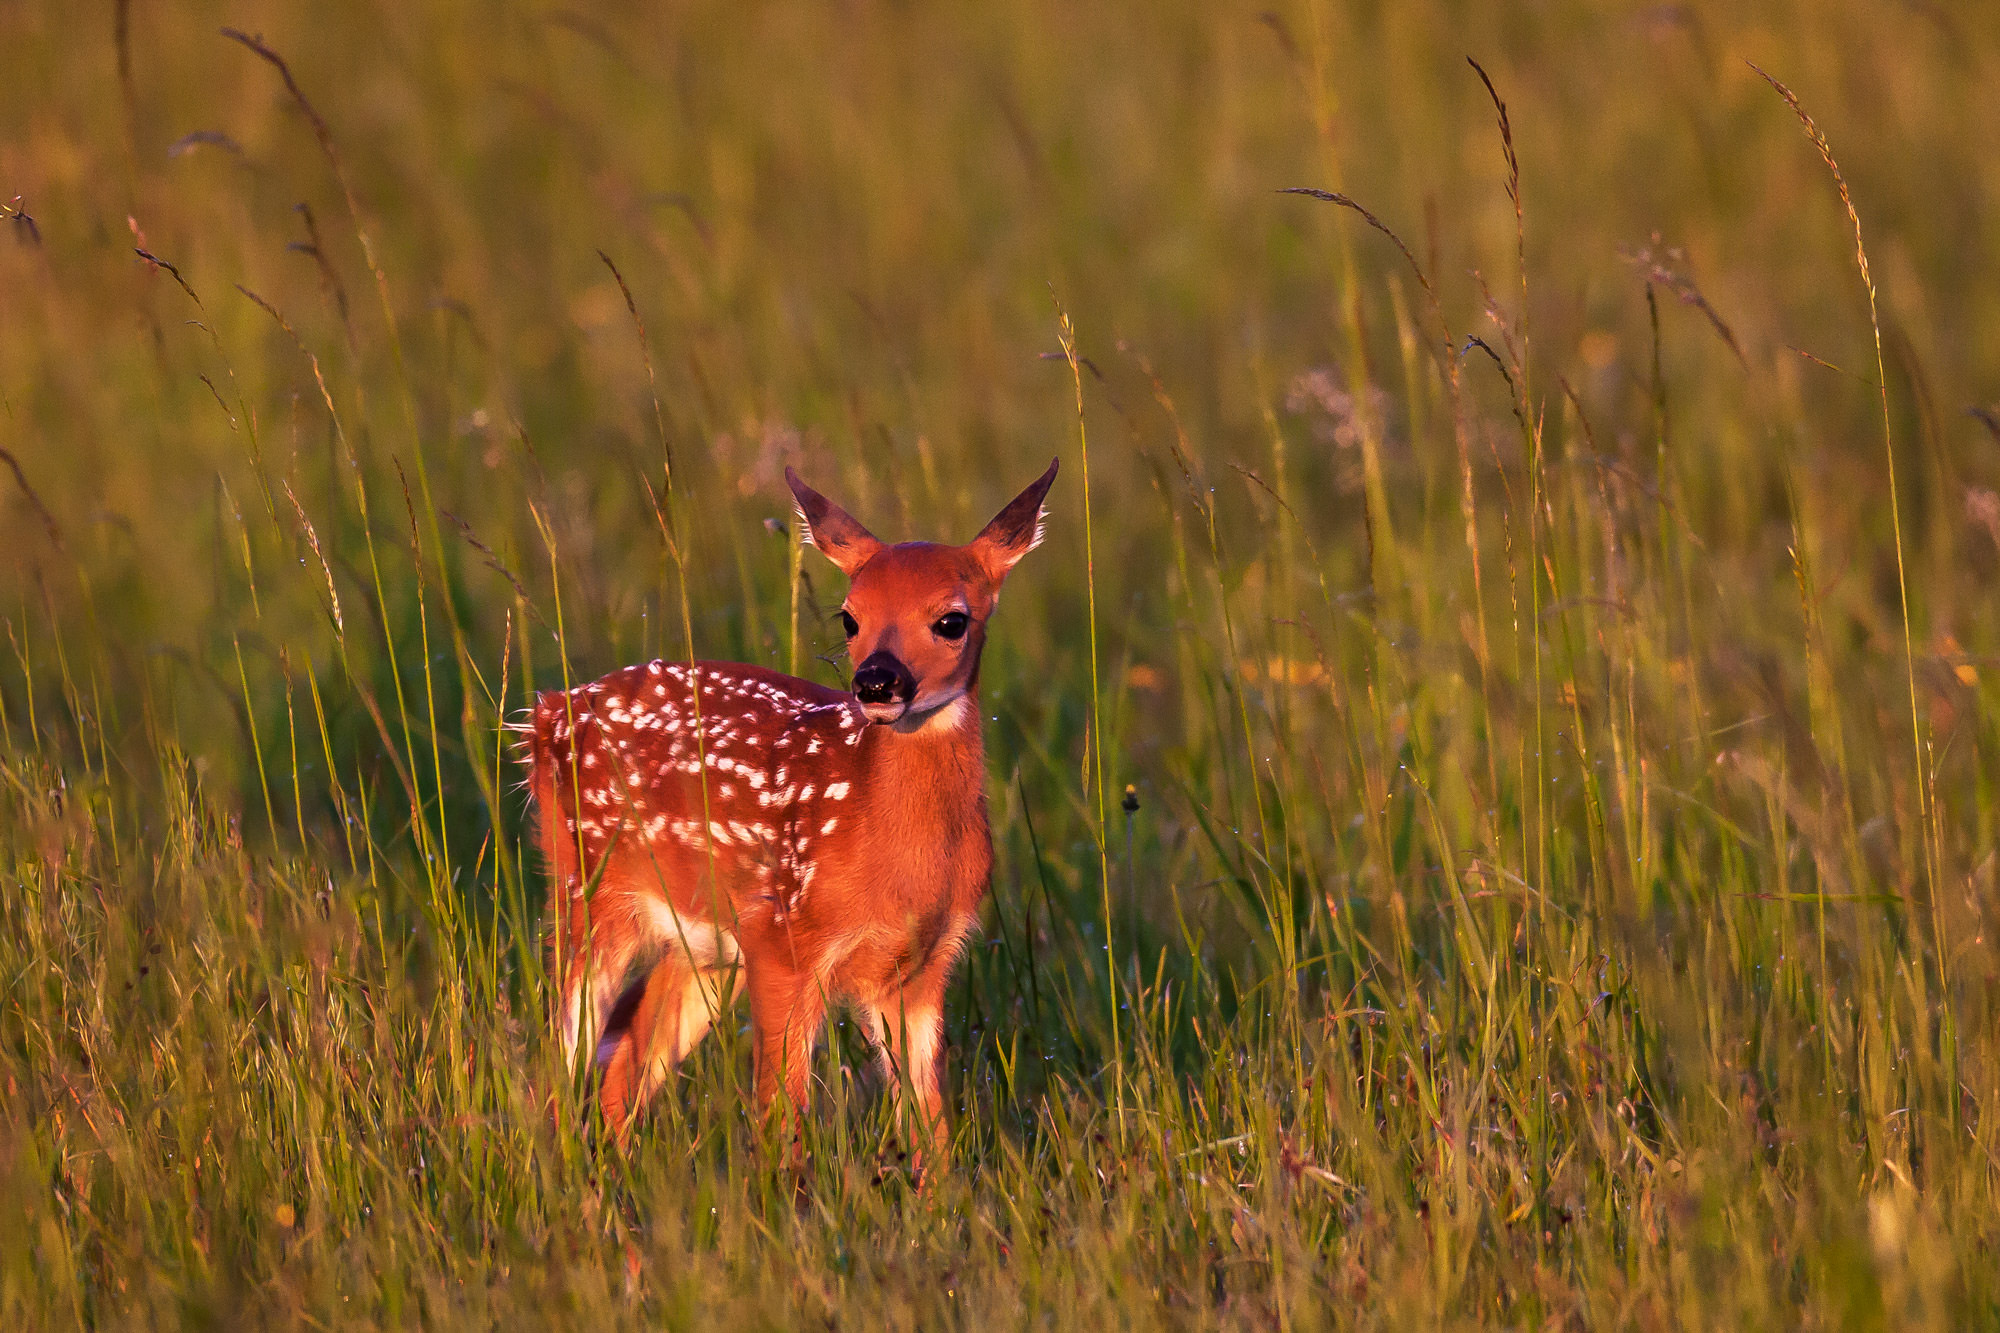 Fawn, Whitetail, Deer, Fawn, Virginia, Shenandoah, limited edition, photograph, fine art, wildlife, photo